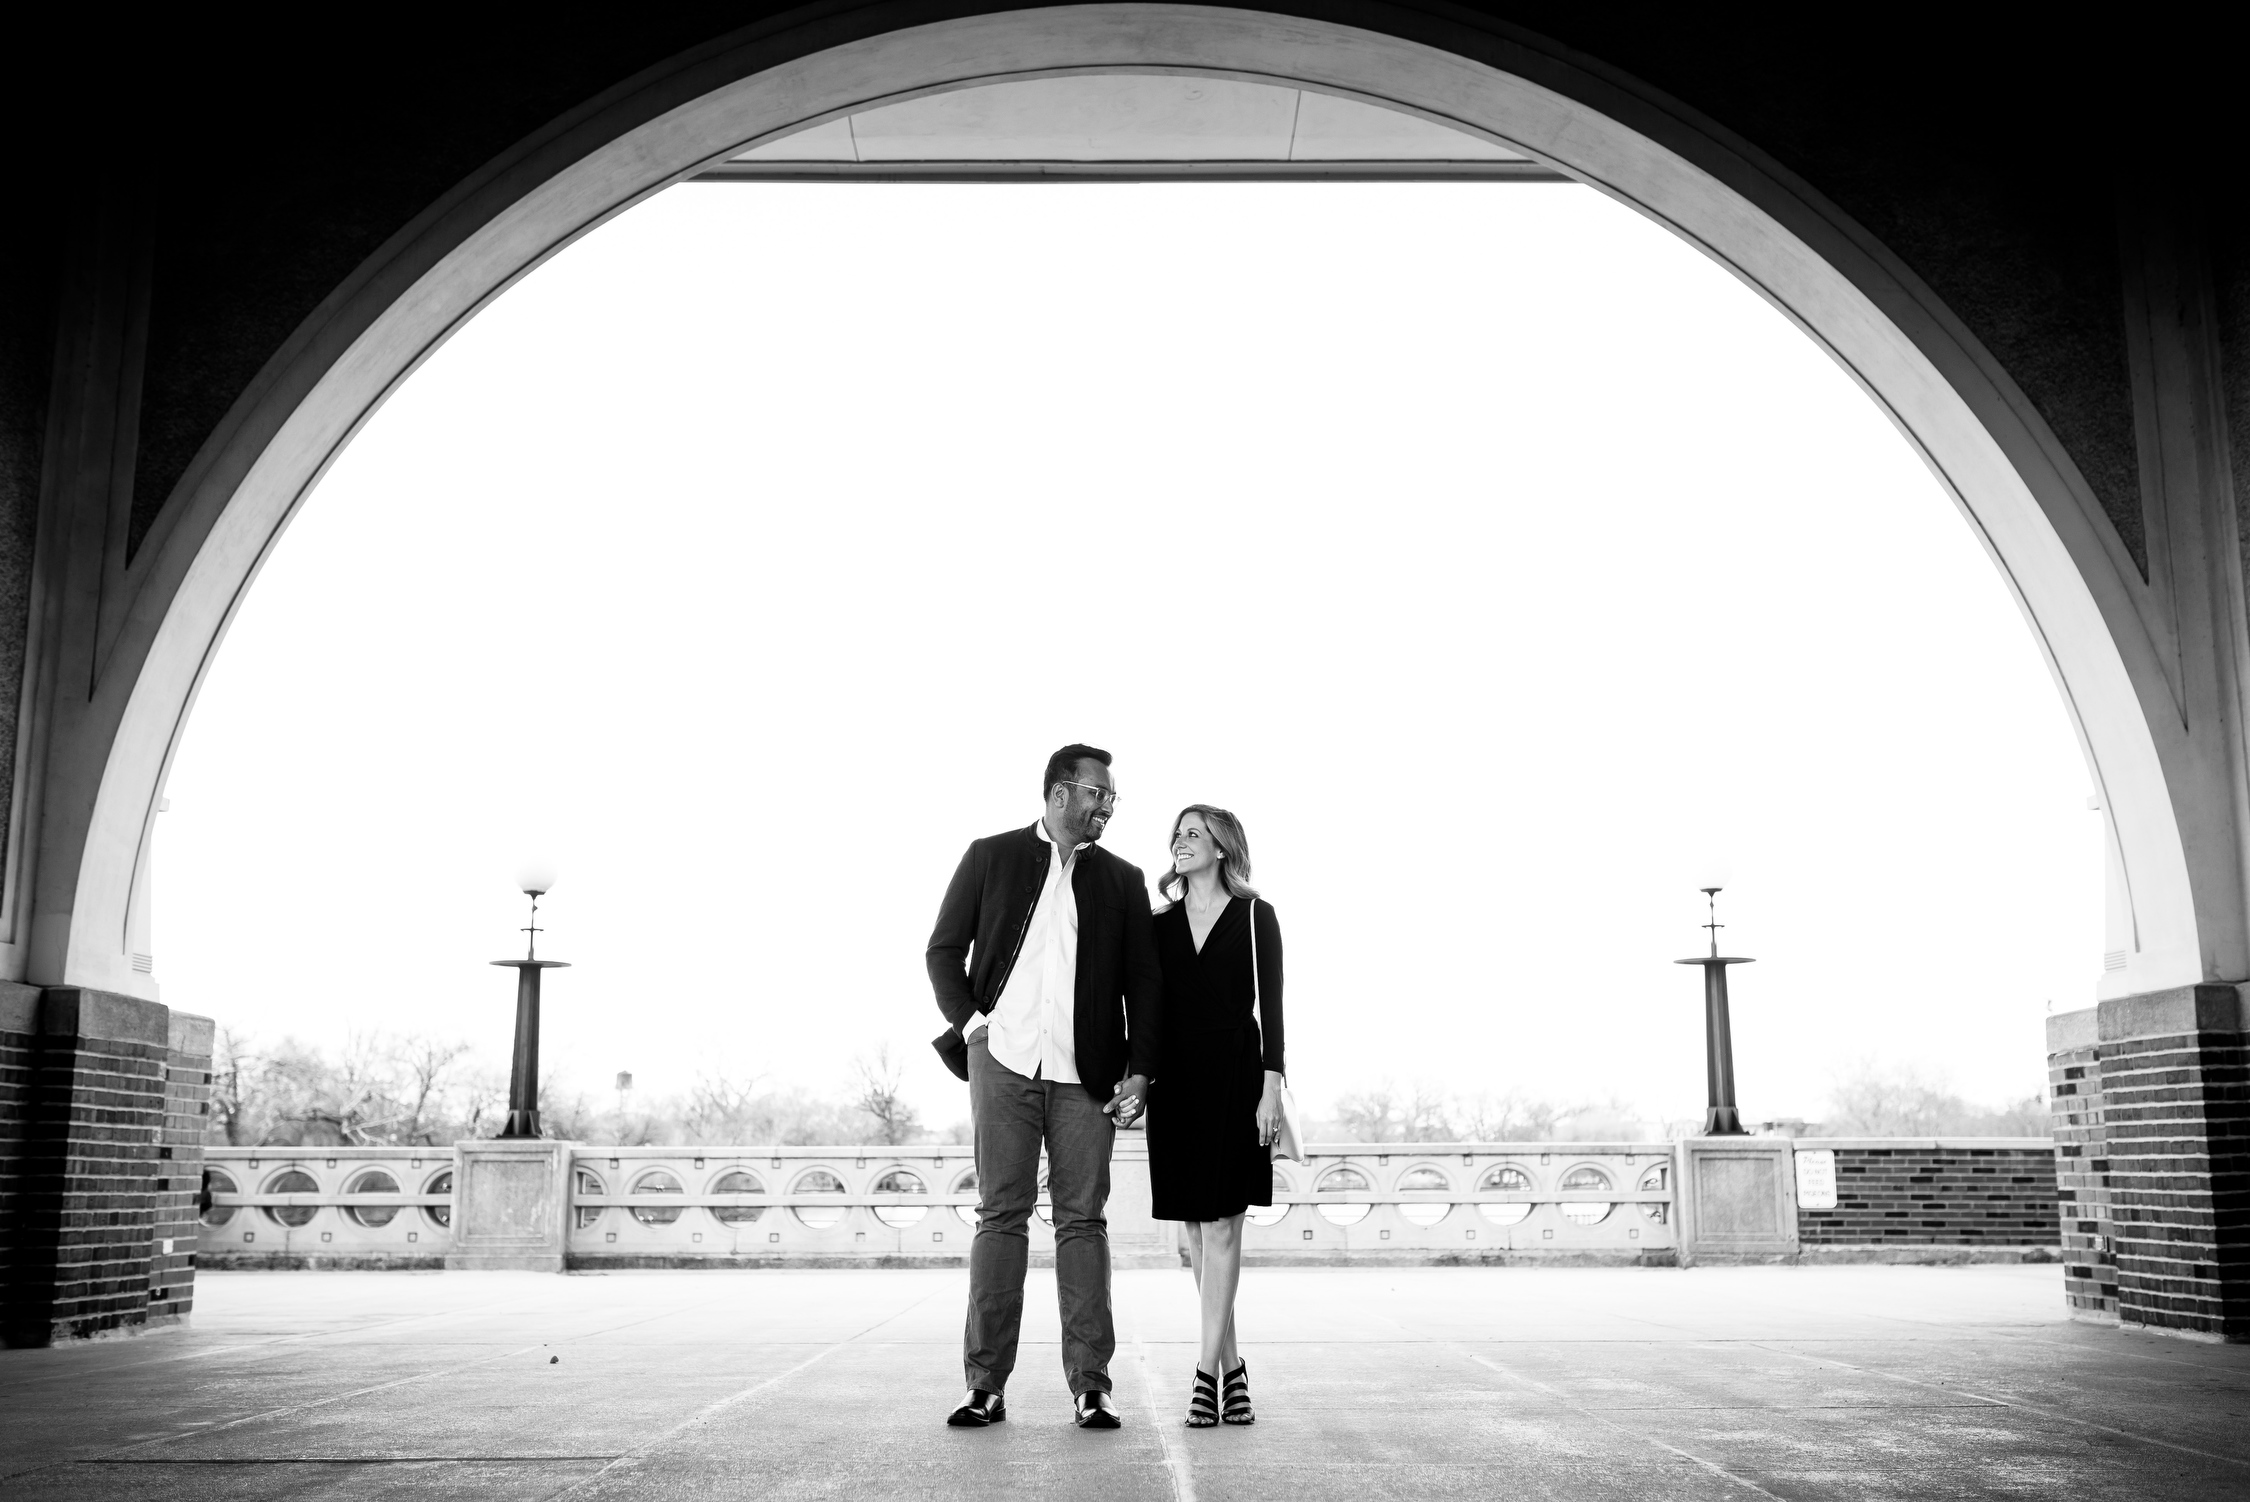 Chicago engagement session at the boathouse in Humboldt Park.